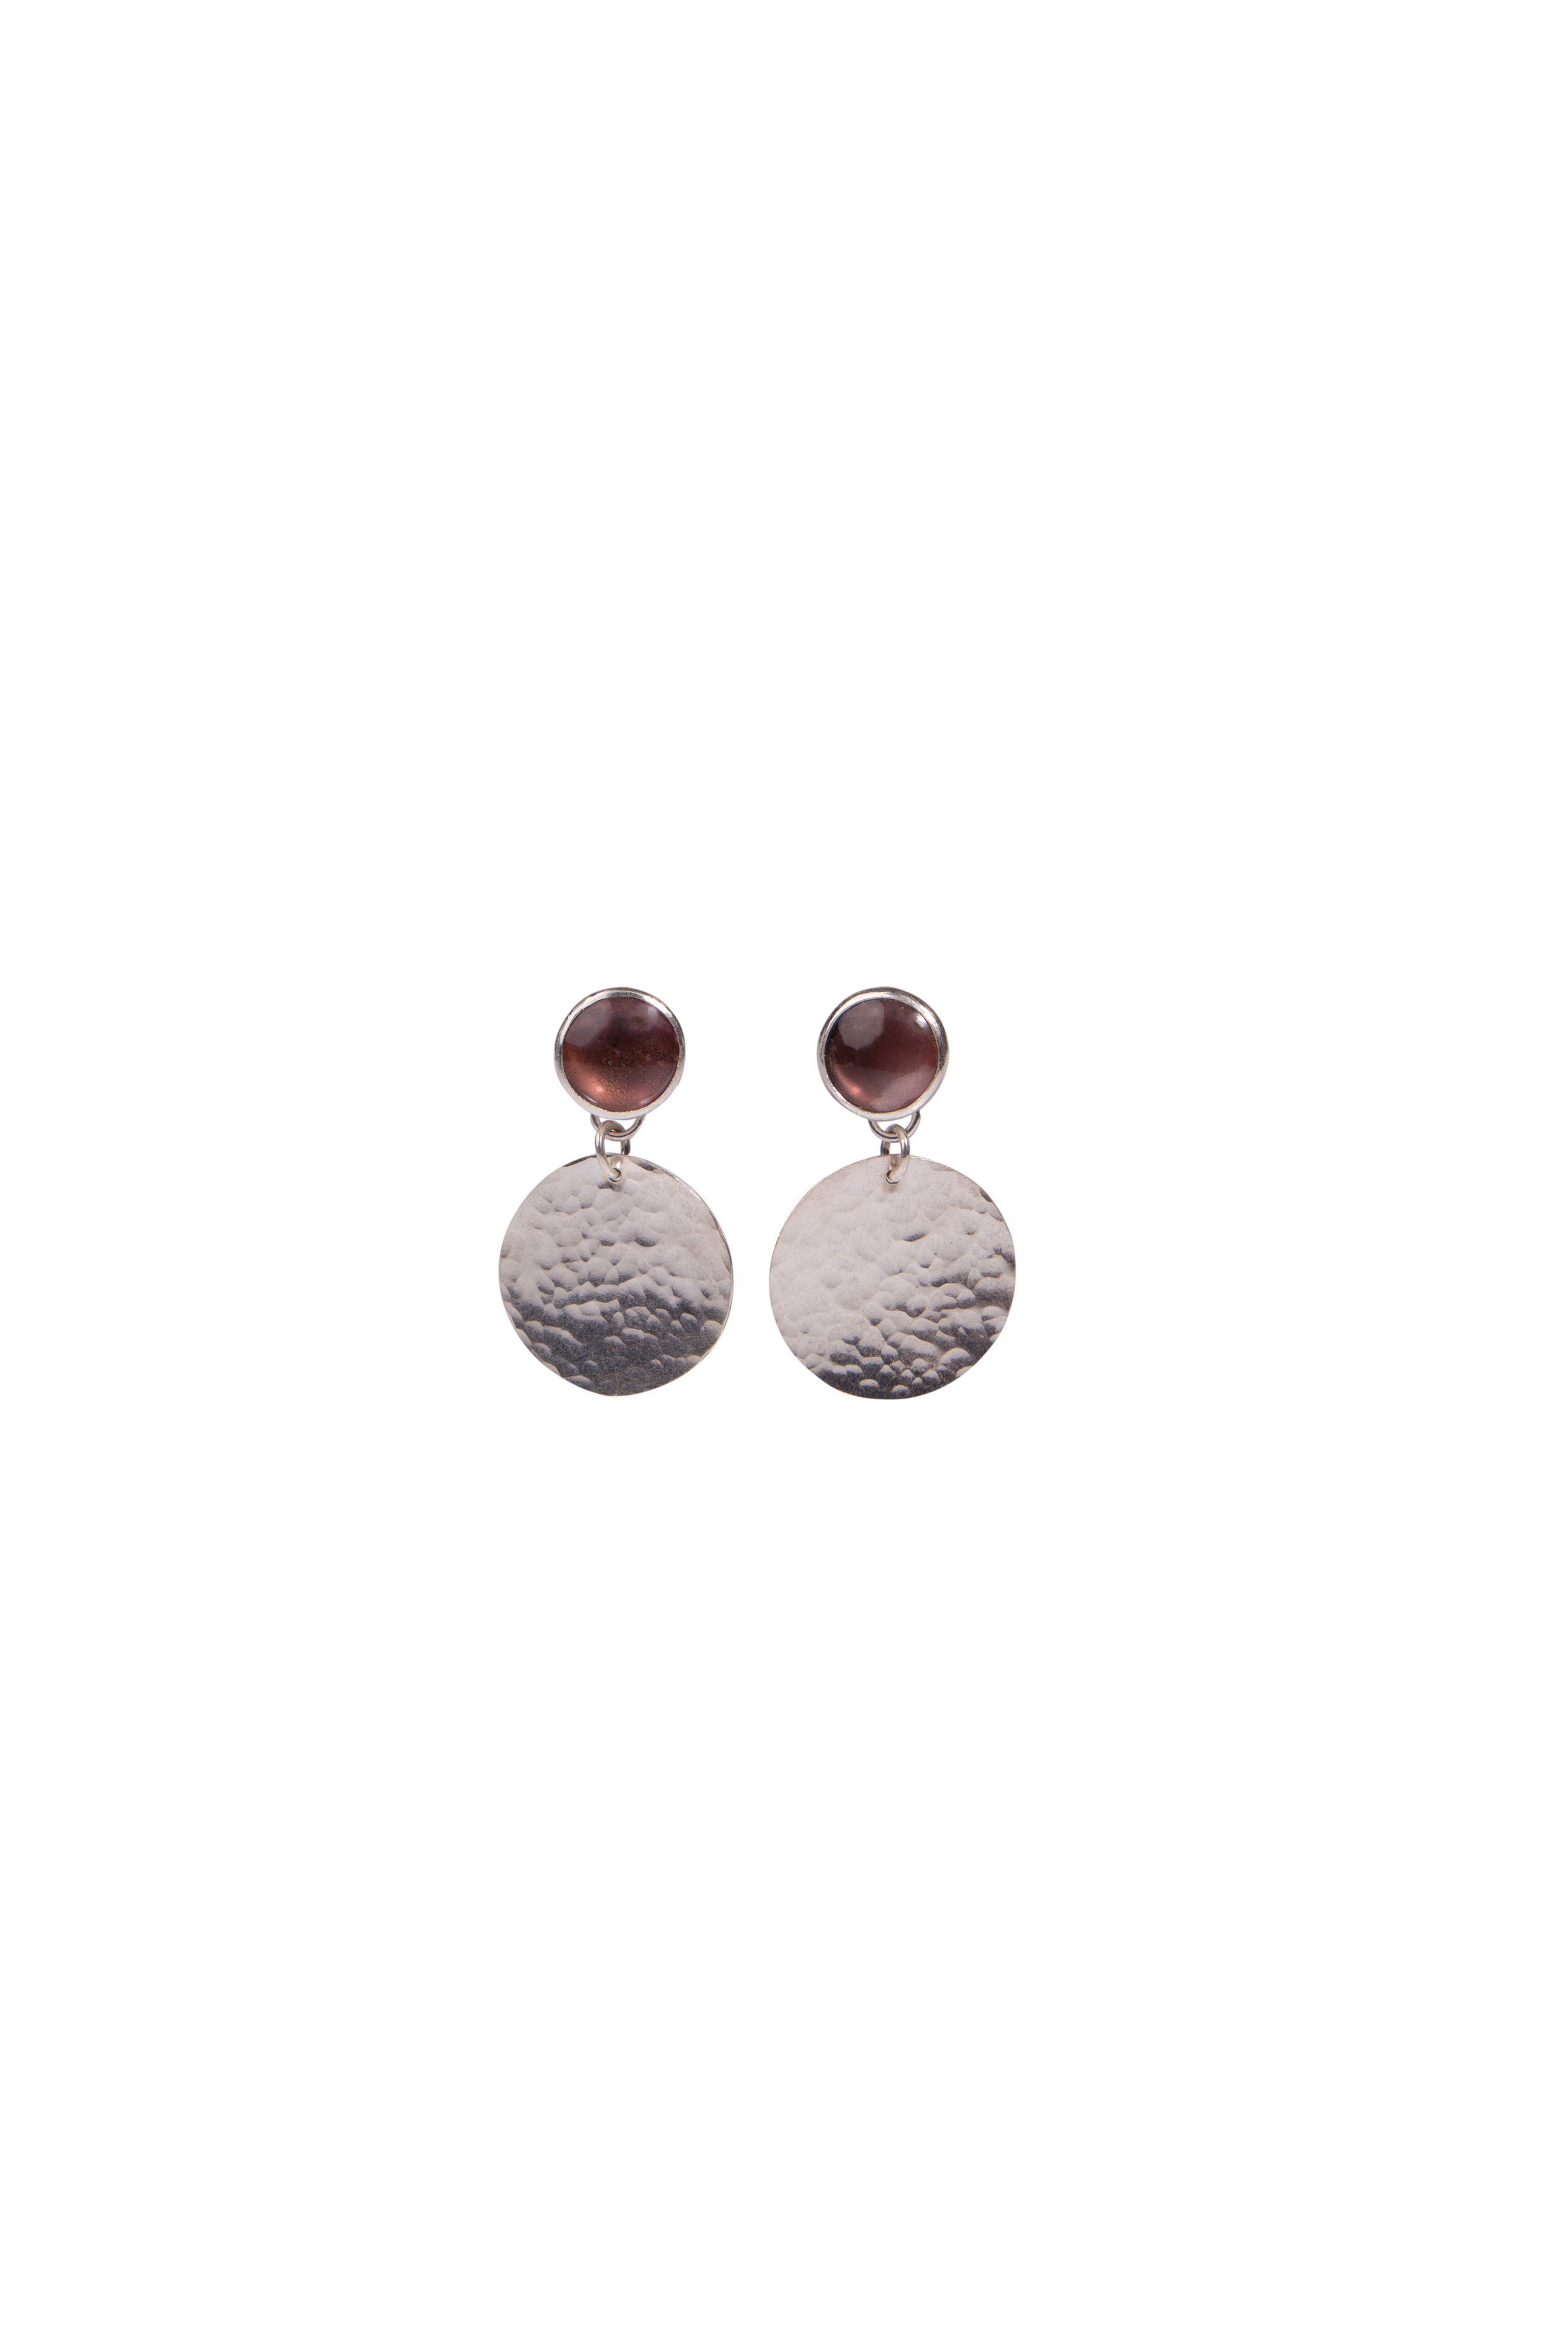 Classic Copper Studs with Small Silver Disks  Sterling silver with oxidised copper set under glass with textured silver disk drops